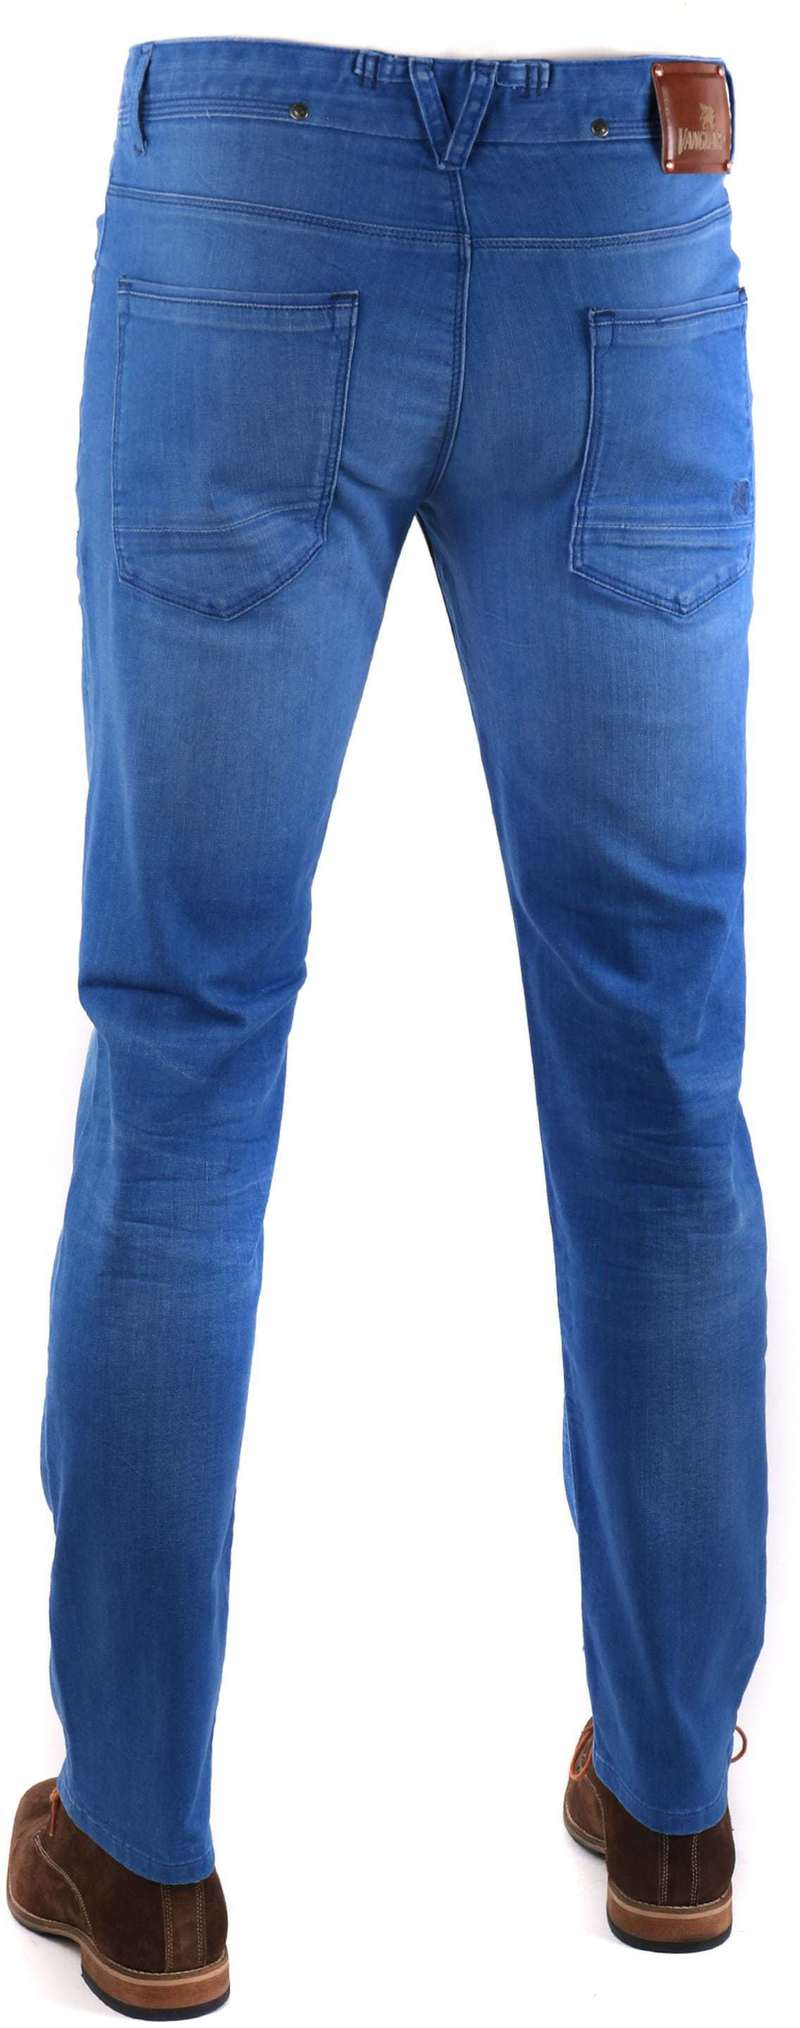 Vanguard V7 Rider Jeans Blue photo 1